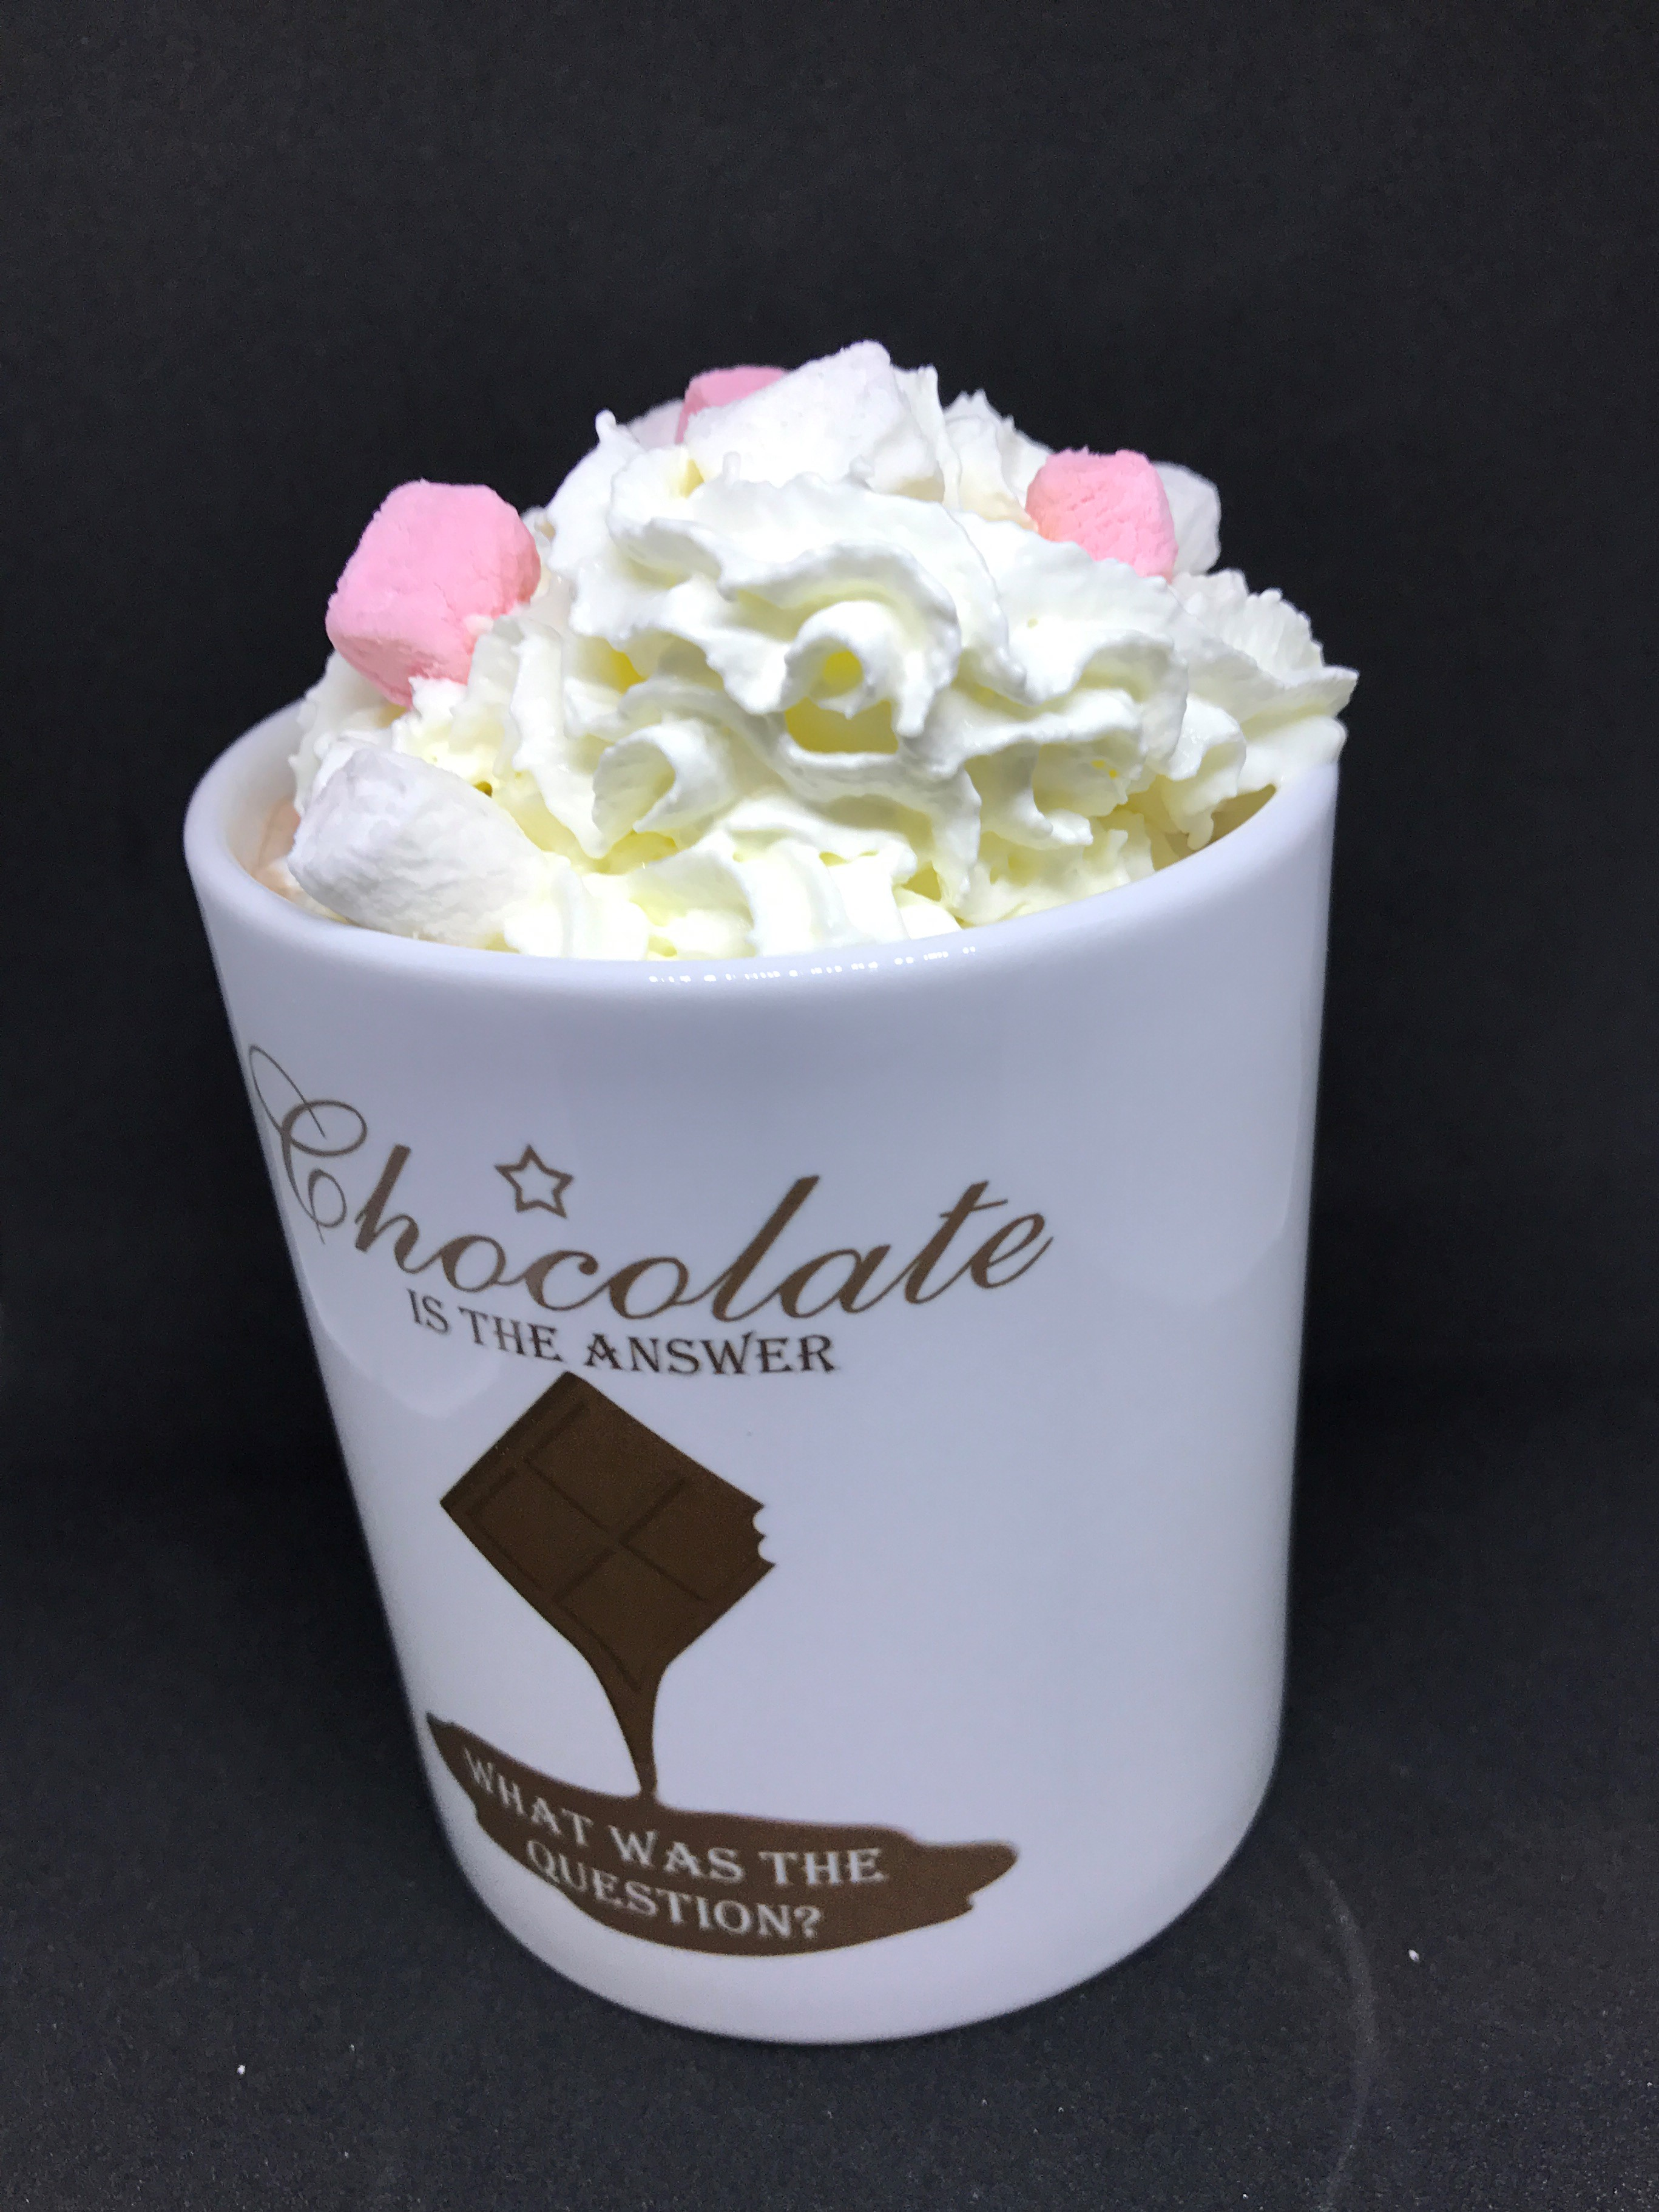 Hot chocolate gift set - CC's Chocolate Creations